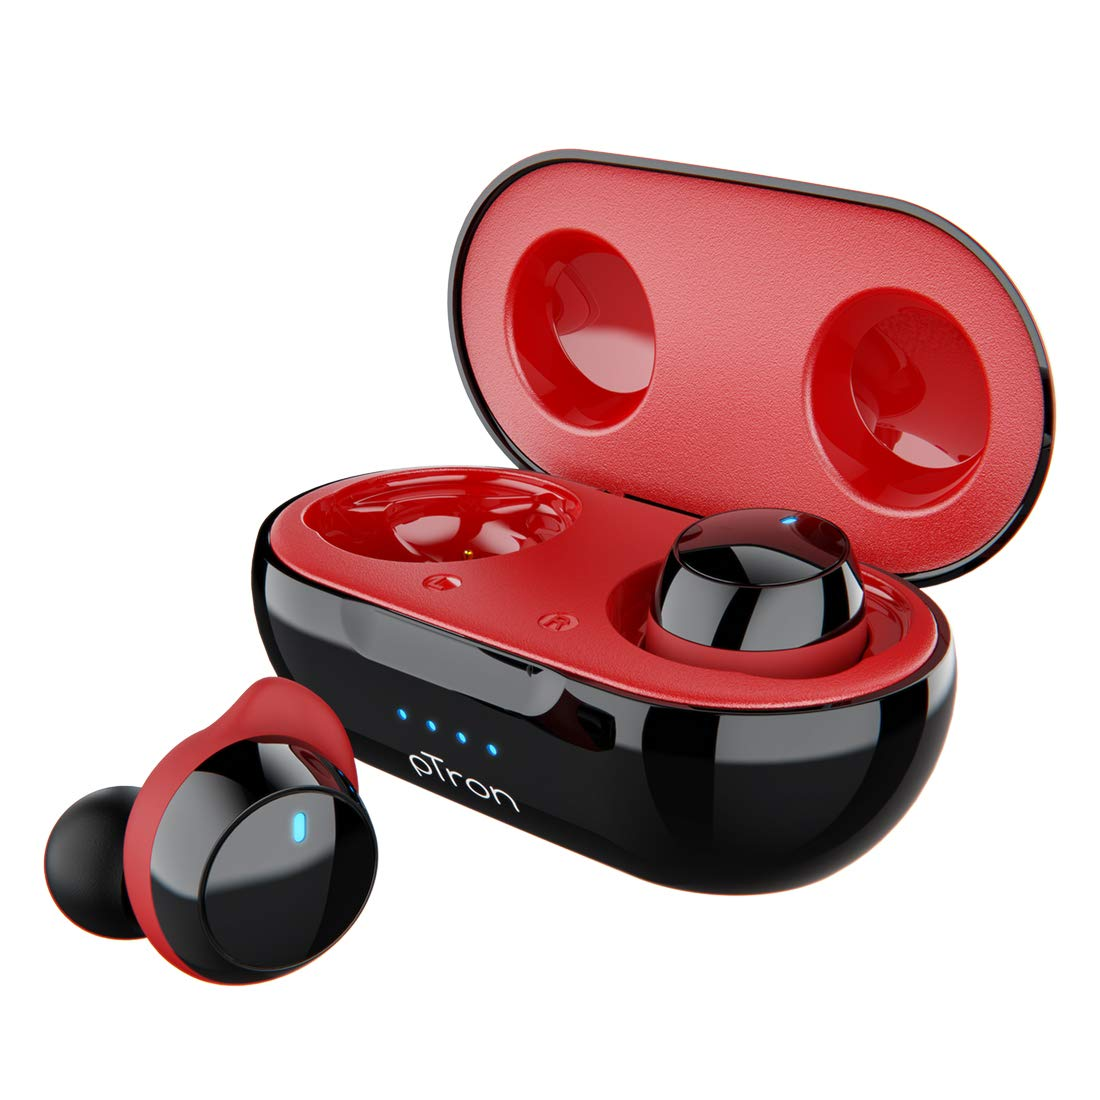 Ptron Bassbuds Elite Wireless Earbuds Pros and Cons Detail